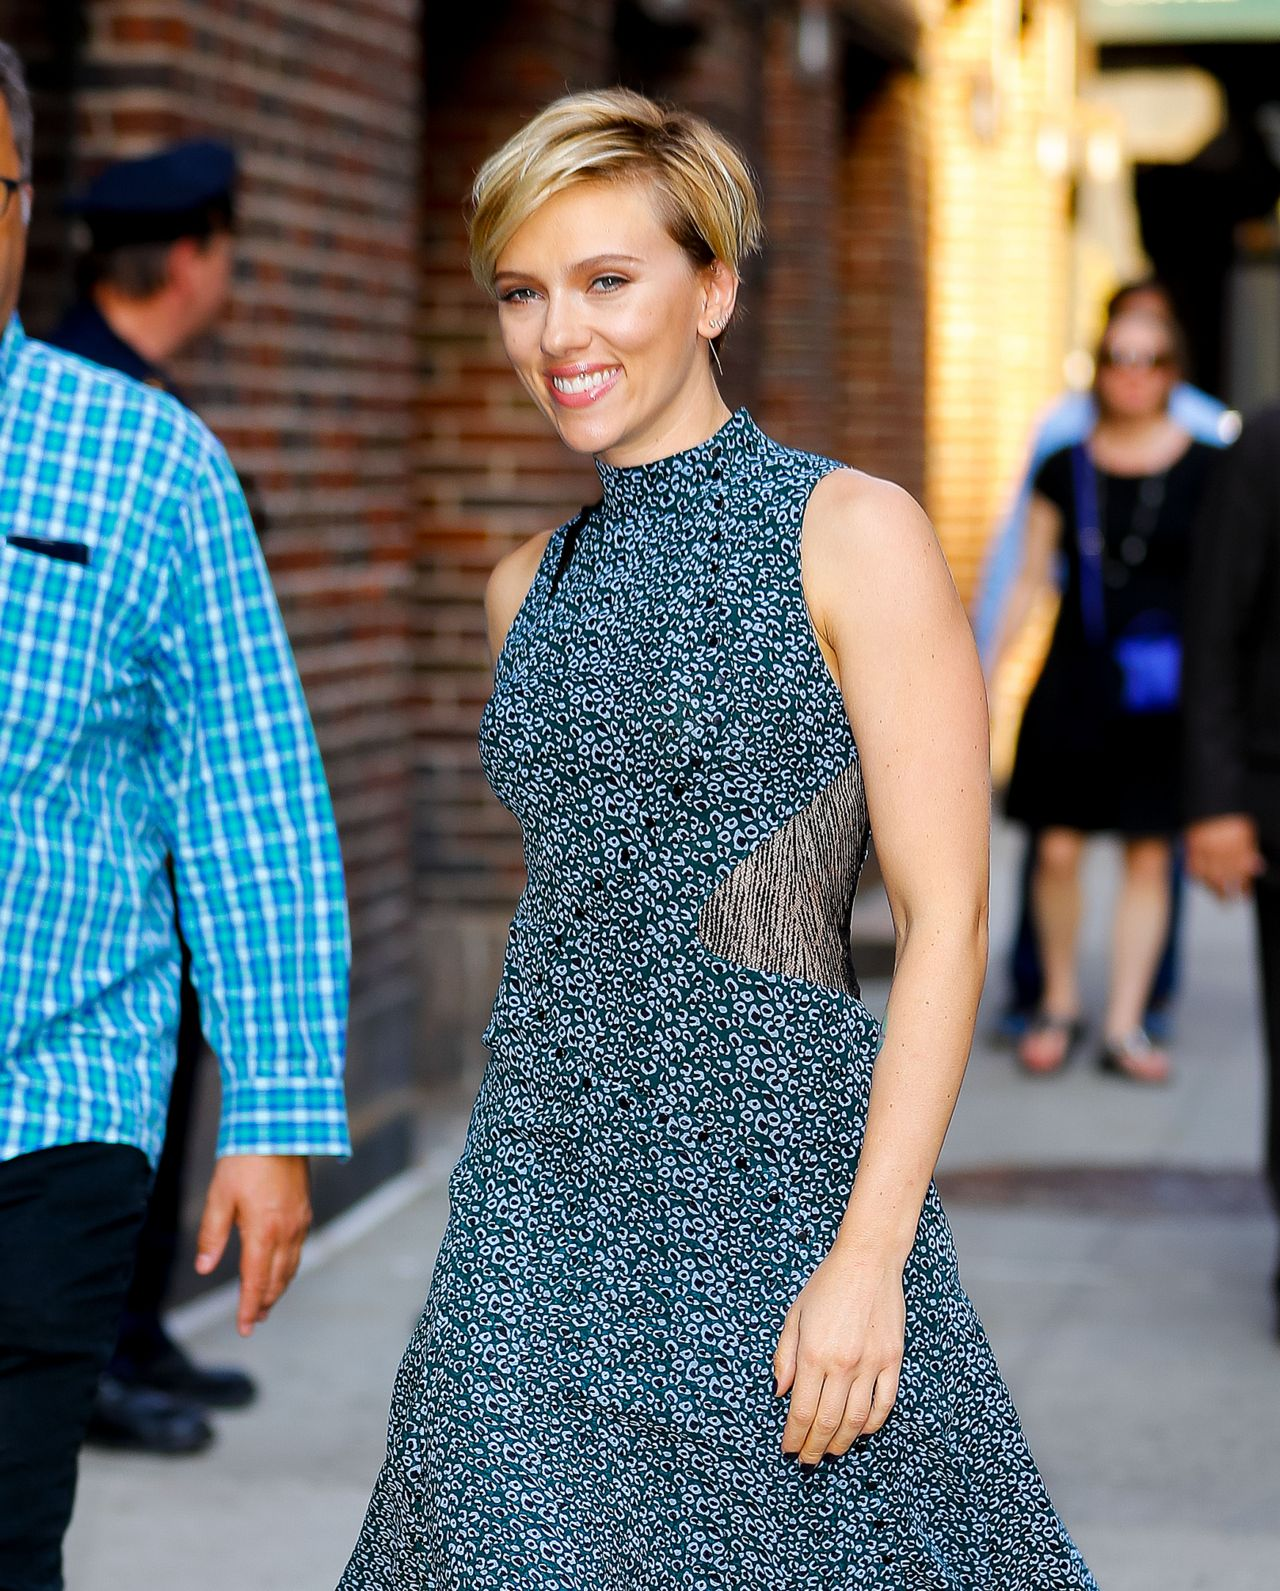 Scarlett Johansson photo #789844